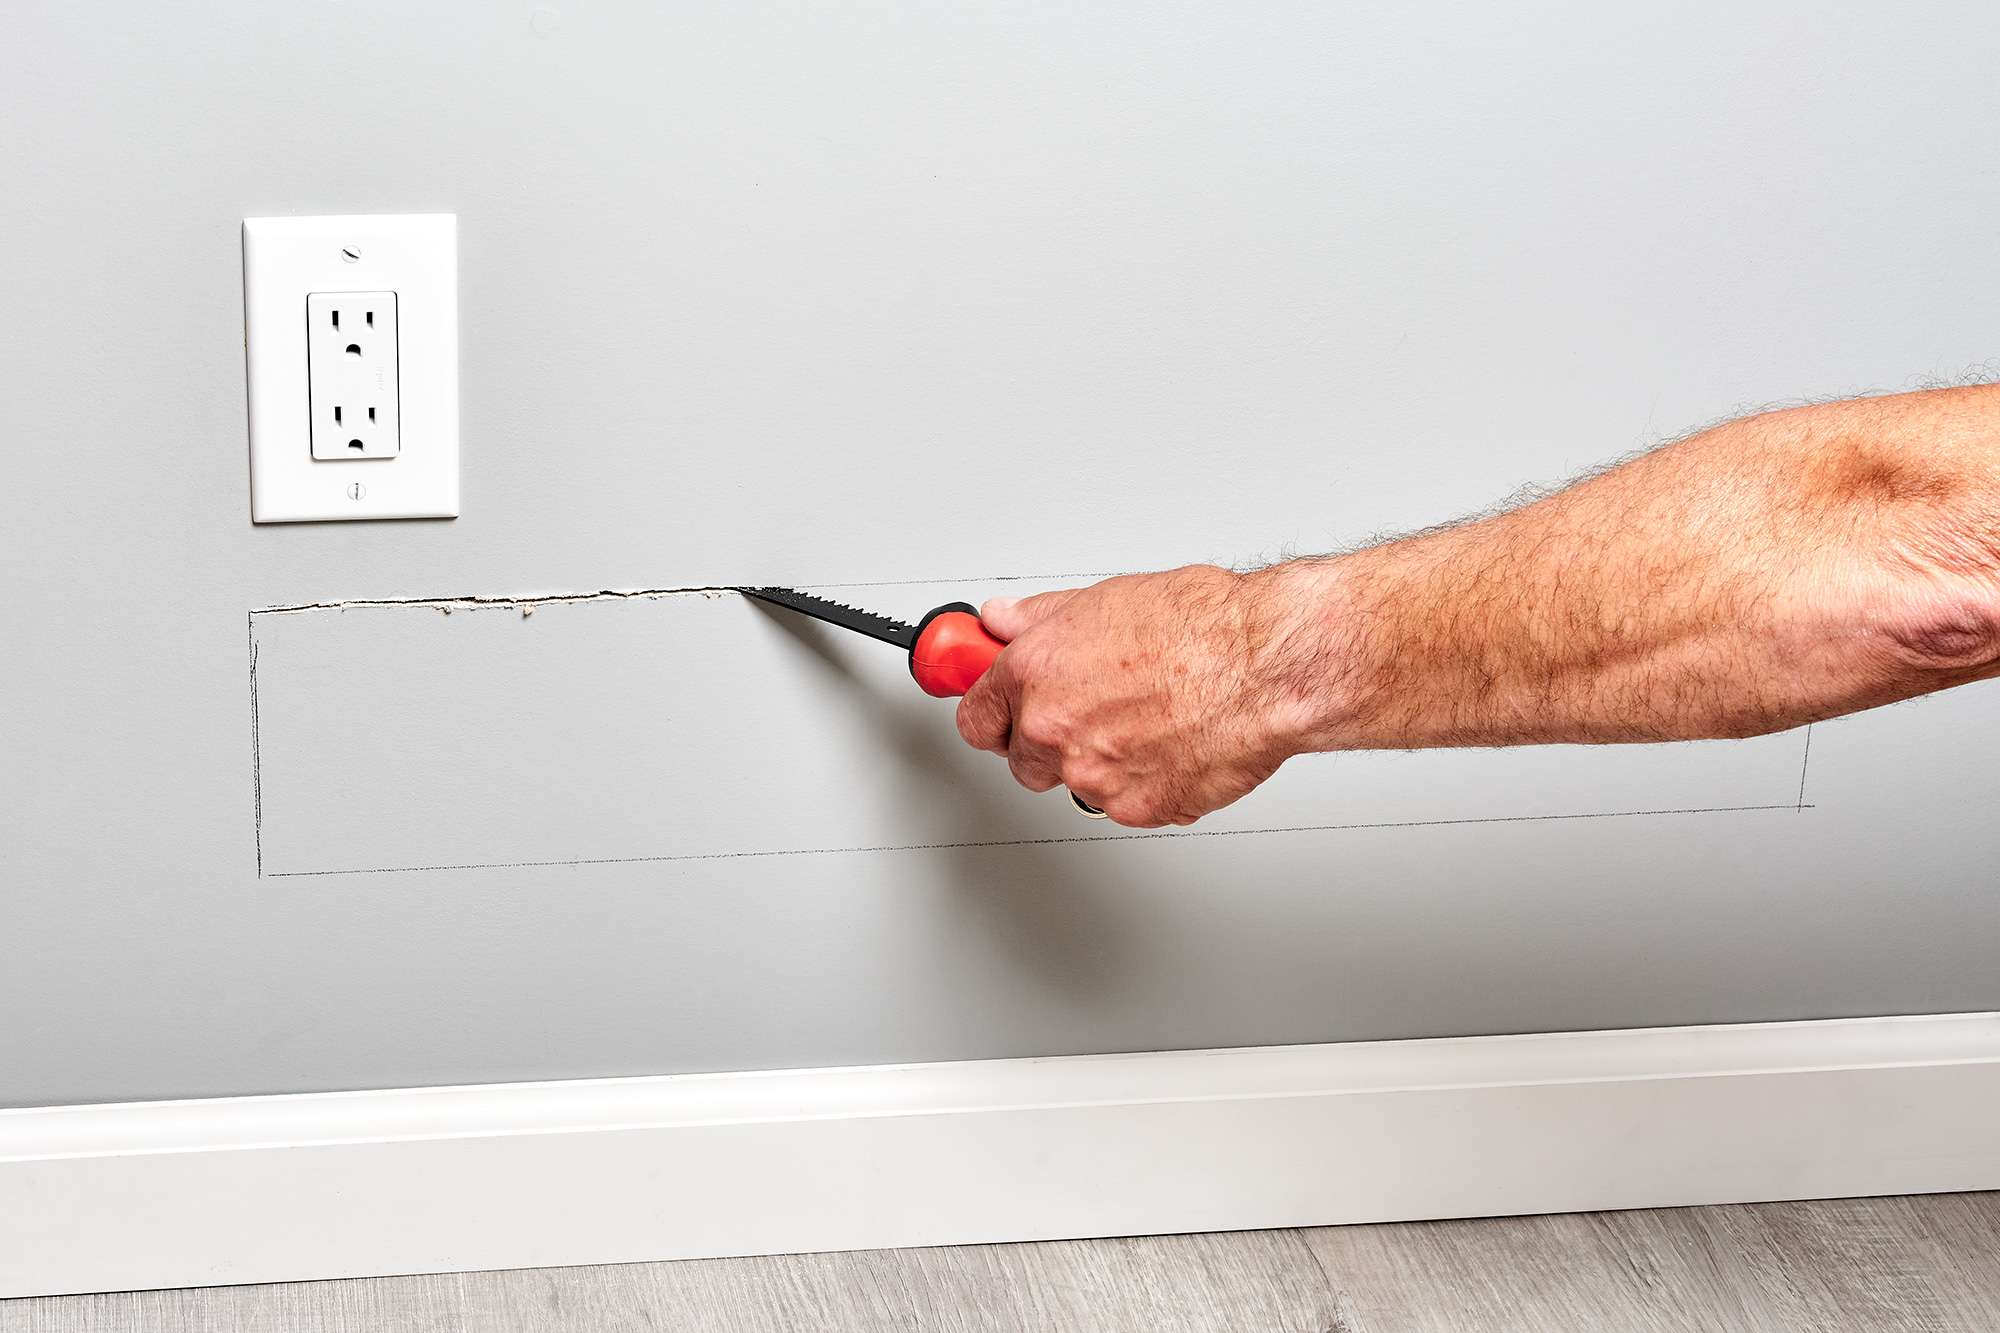 Drywall saw cutting wall open to run electrical wire